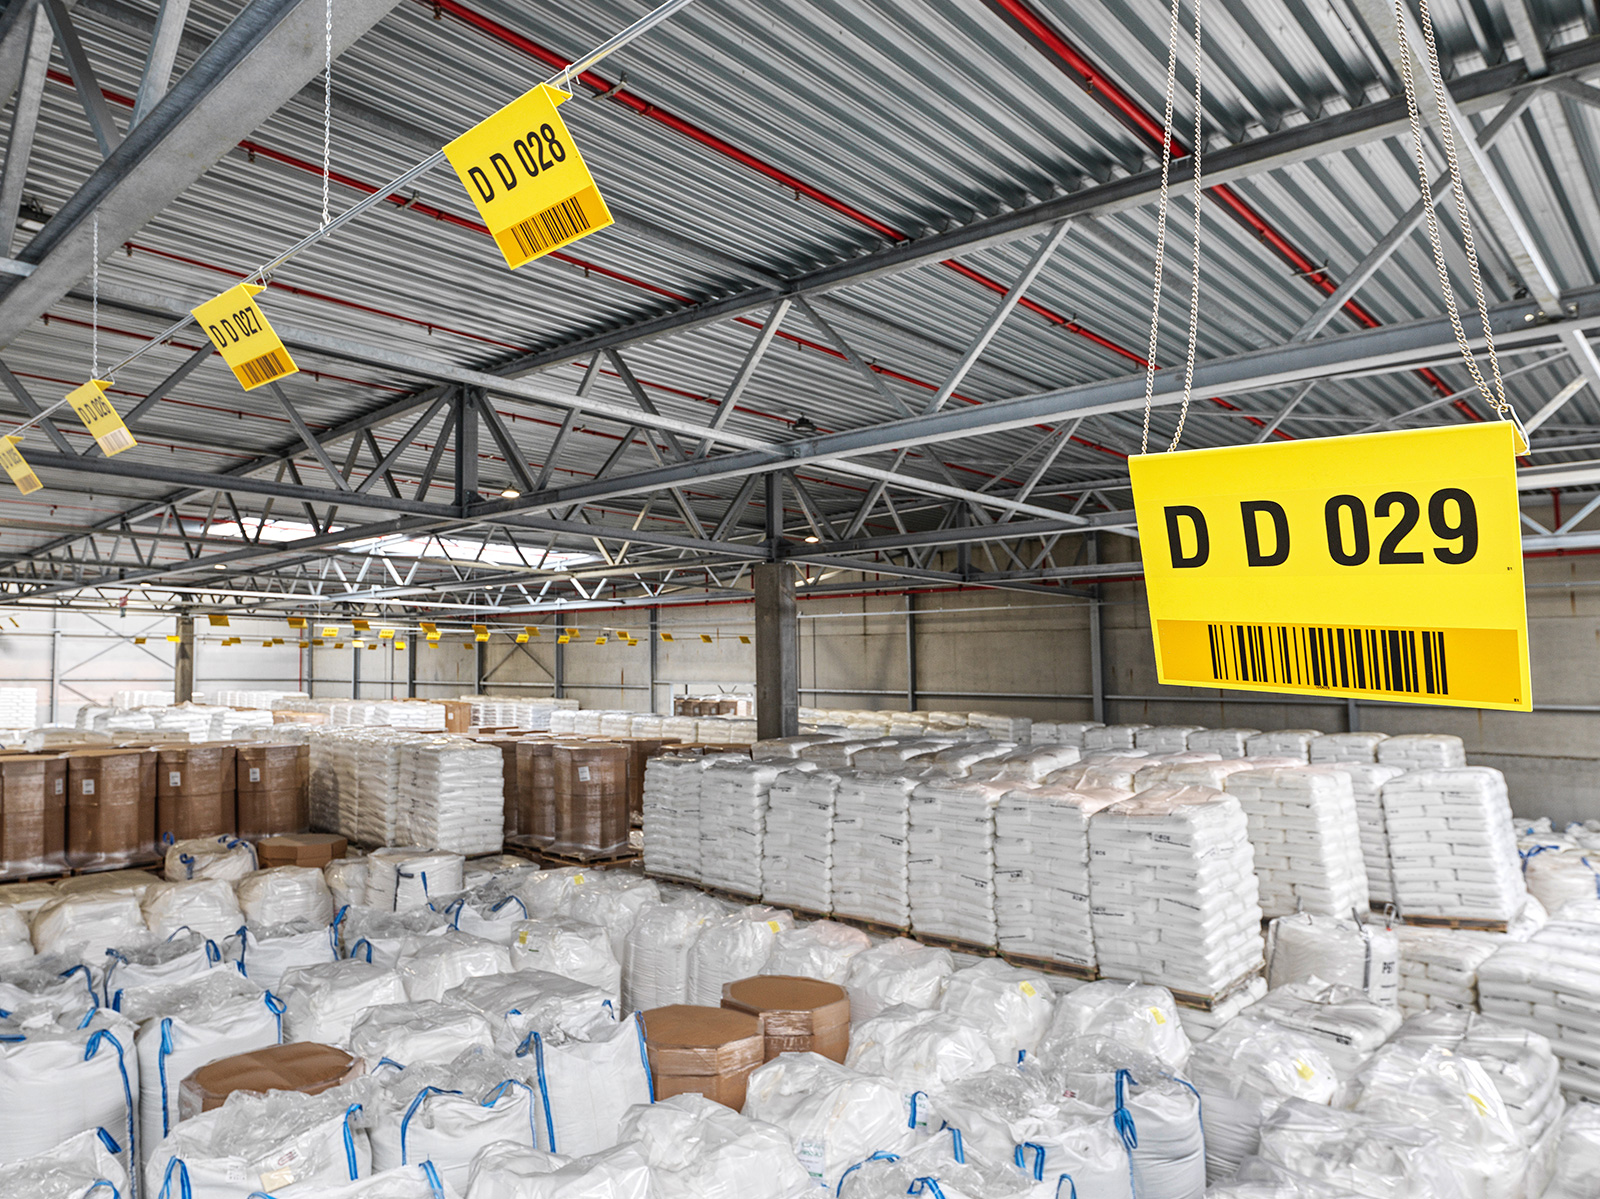 Storage of packaged goods